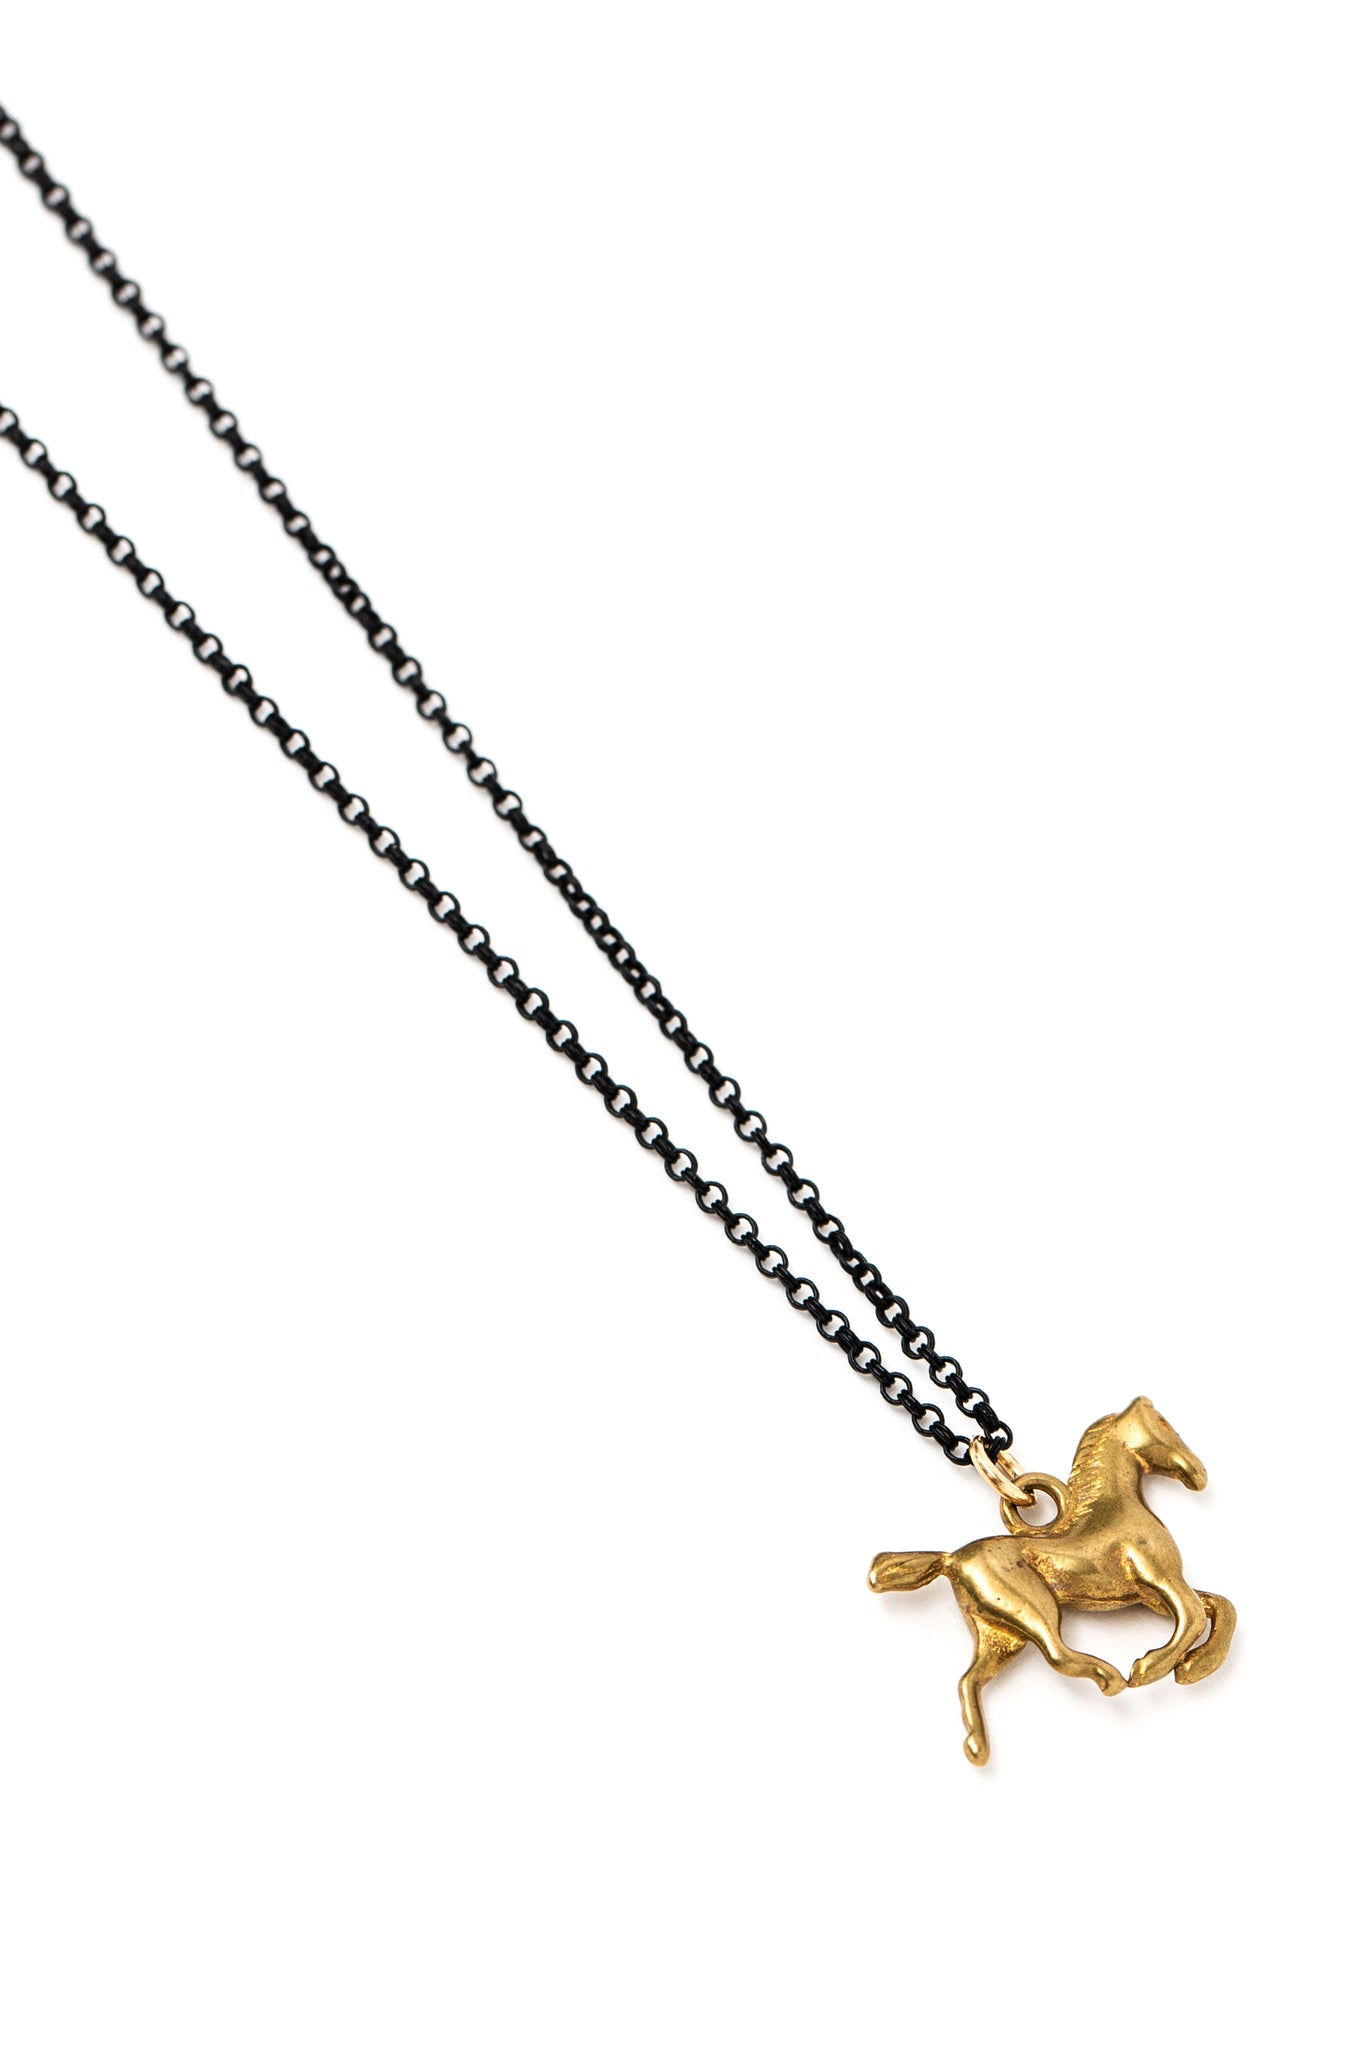 Brass pony charm necklace on double black rolo chain (closeup)